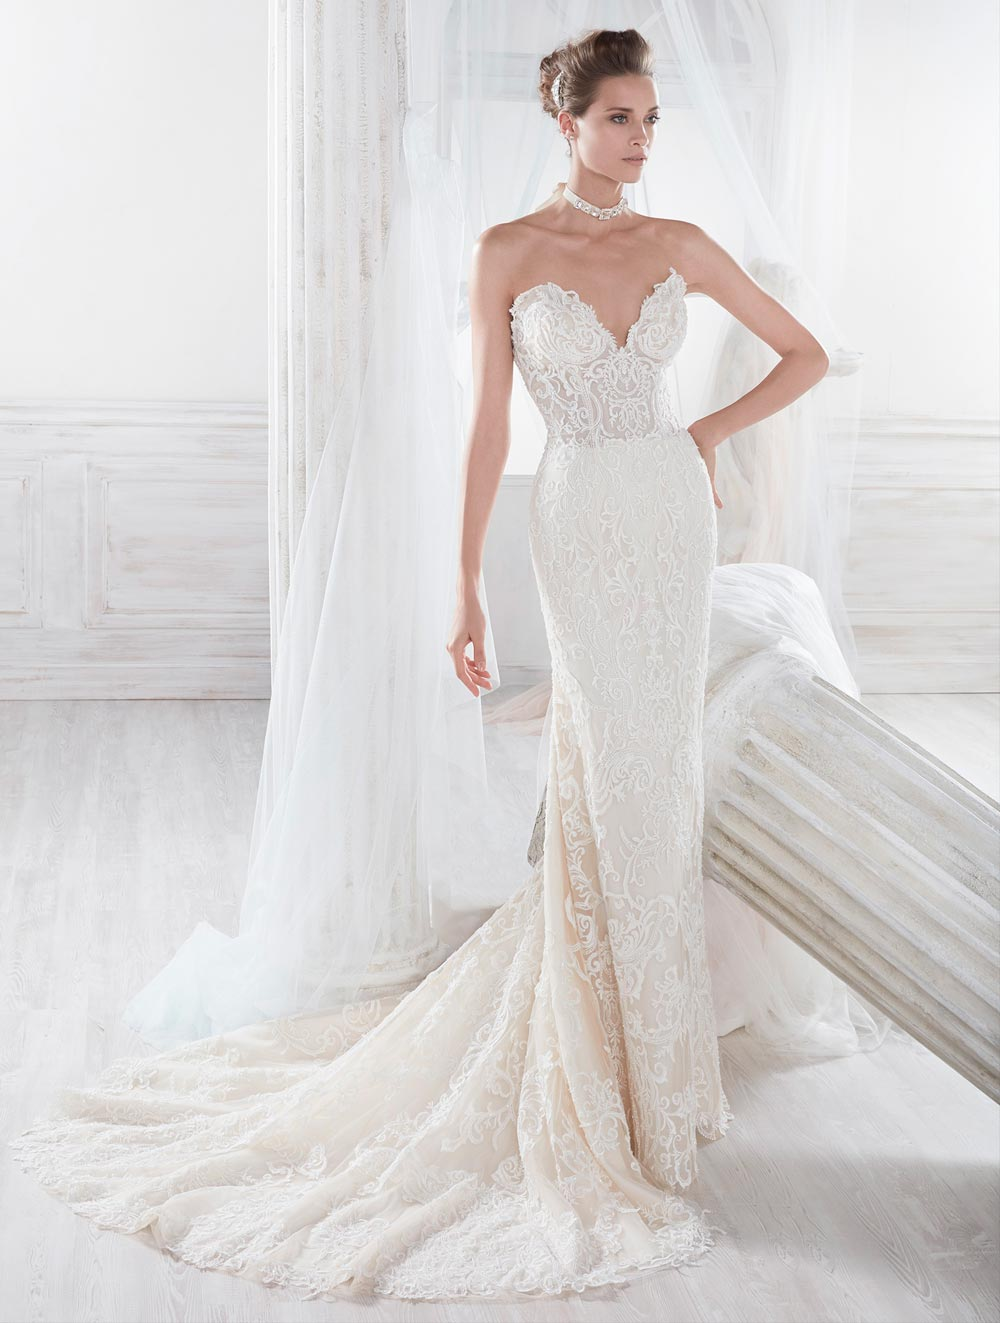 Wedding dresses in lace